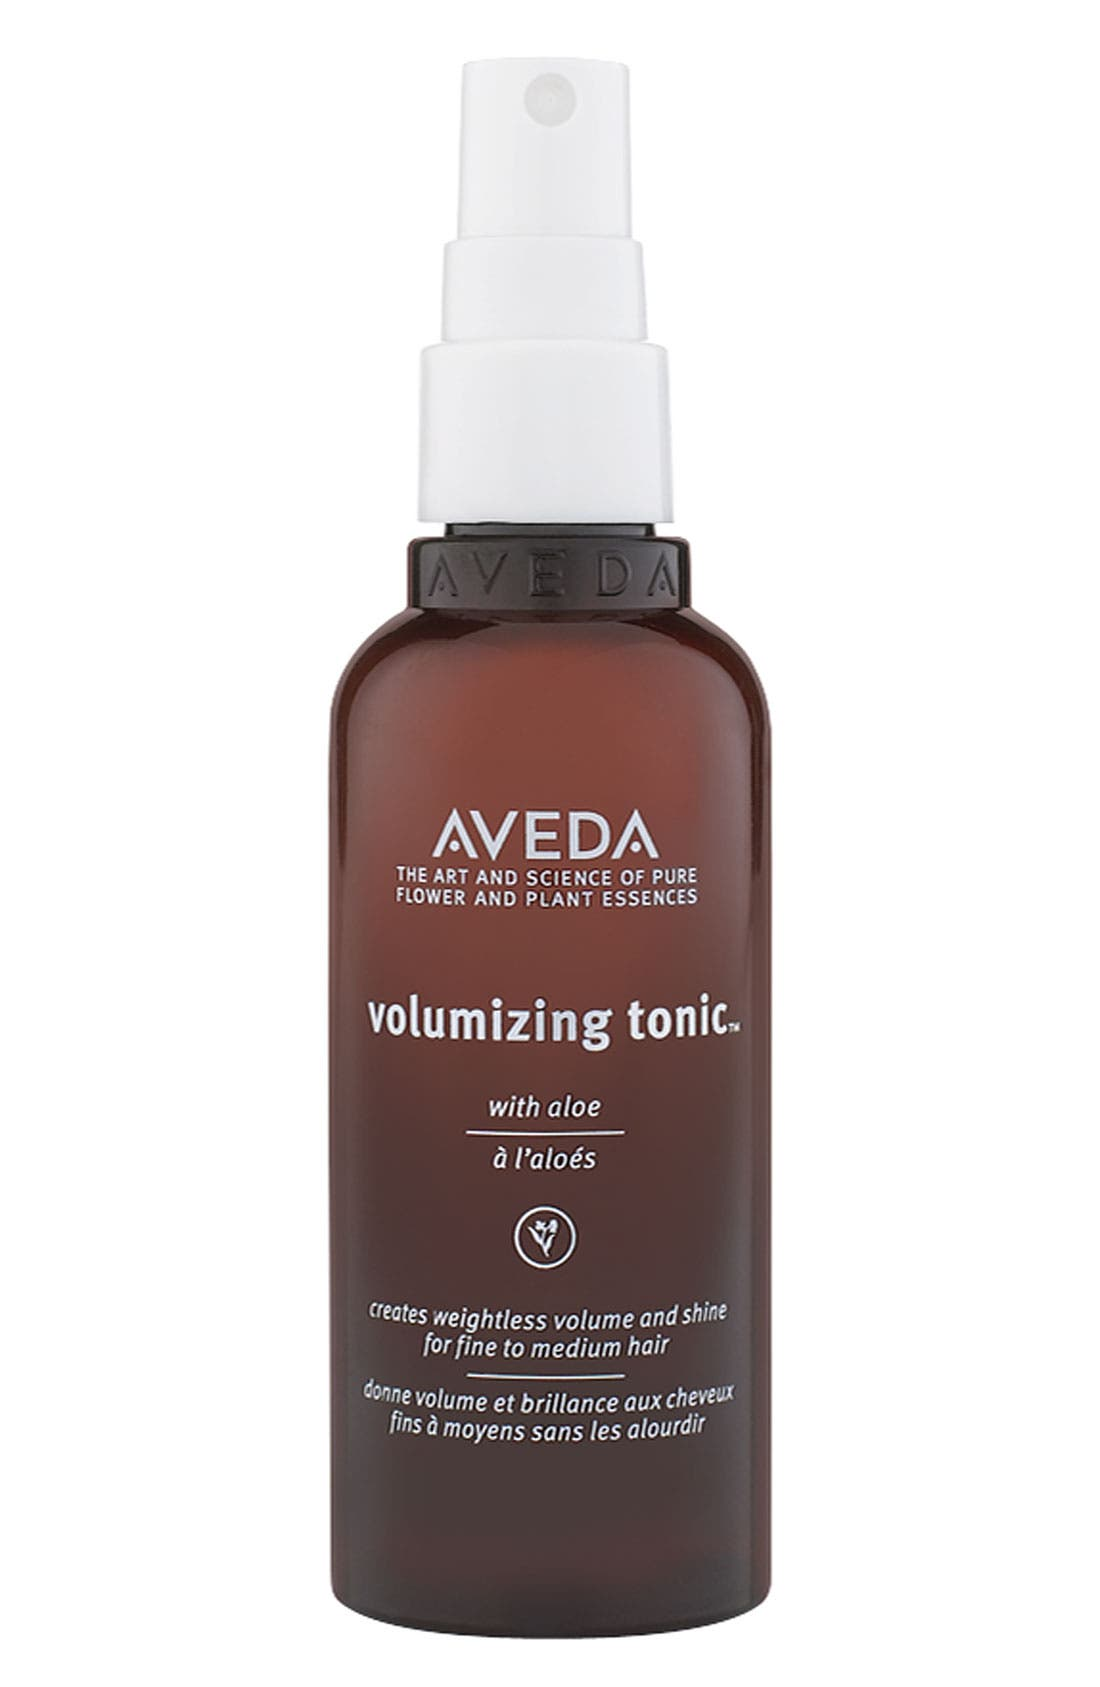 Aveda volumizing tonic™